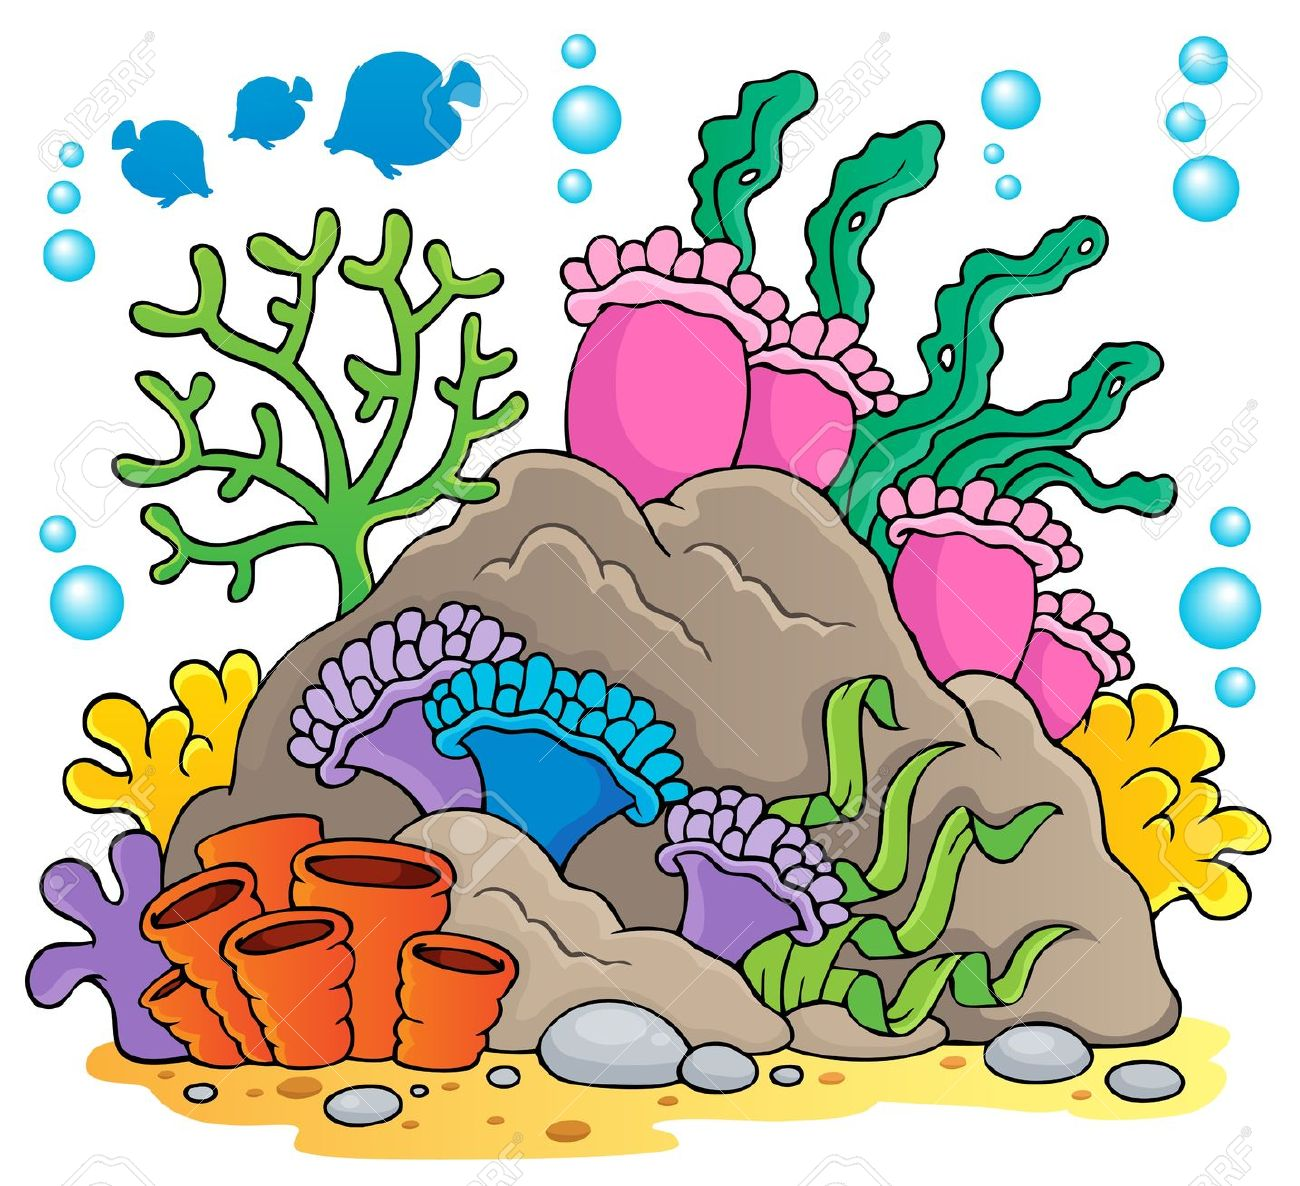 Great Barrier Reef clipart #1, Download drawings